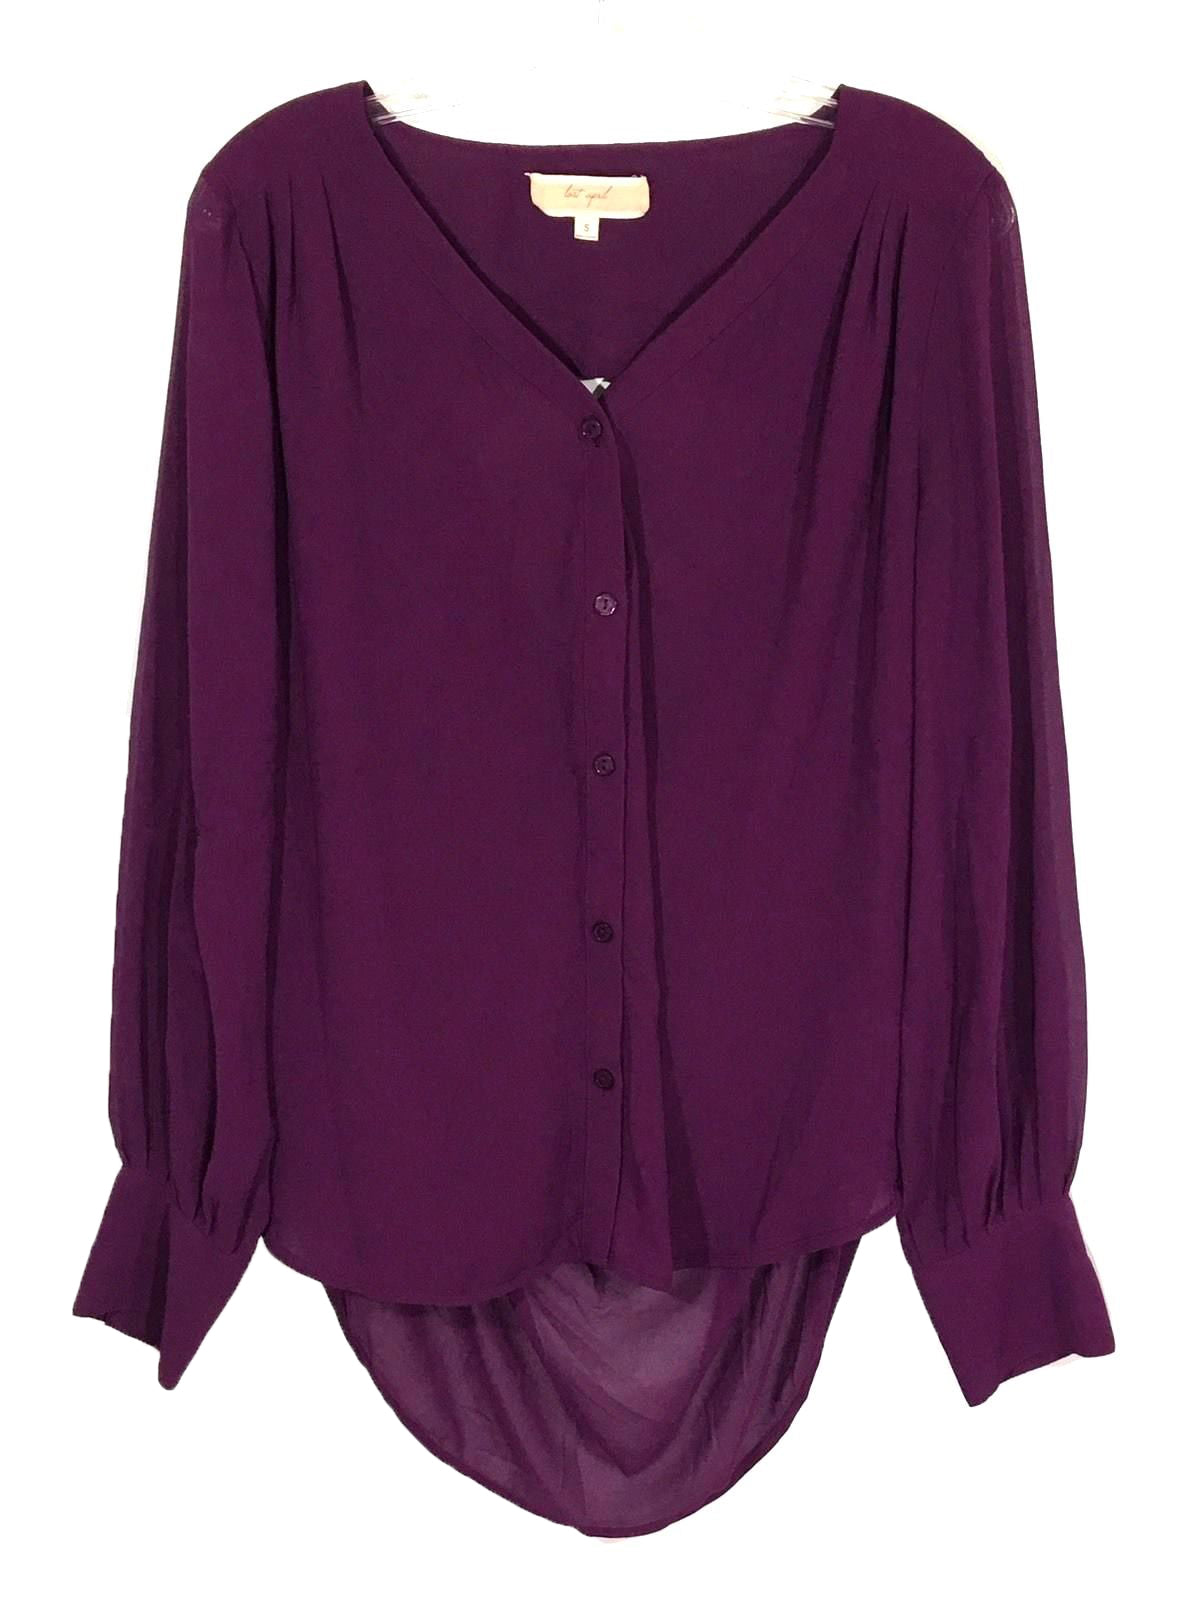 935807a6 ... Lost April Button Down Blouse Open Back Sheer Shirt Boho Flowy Womens  Small S - Preowned ...